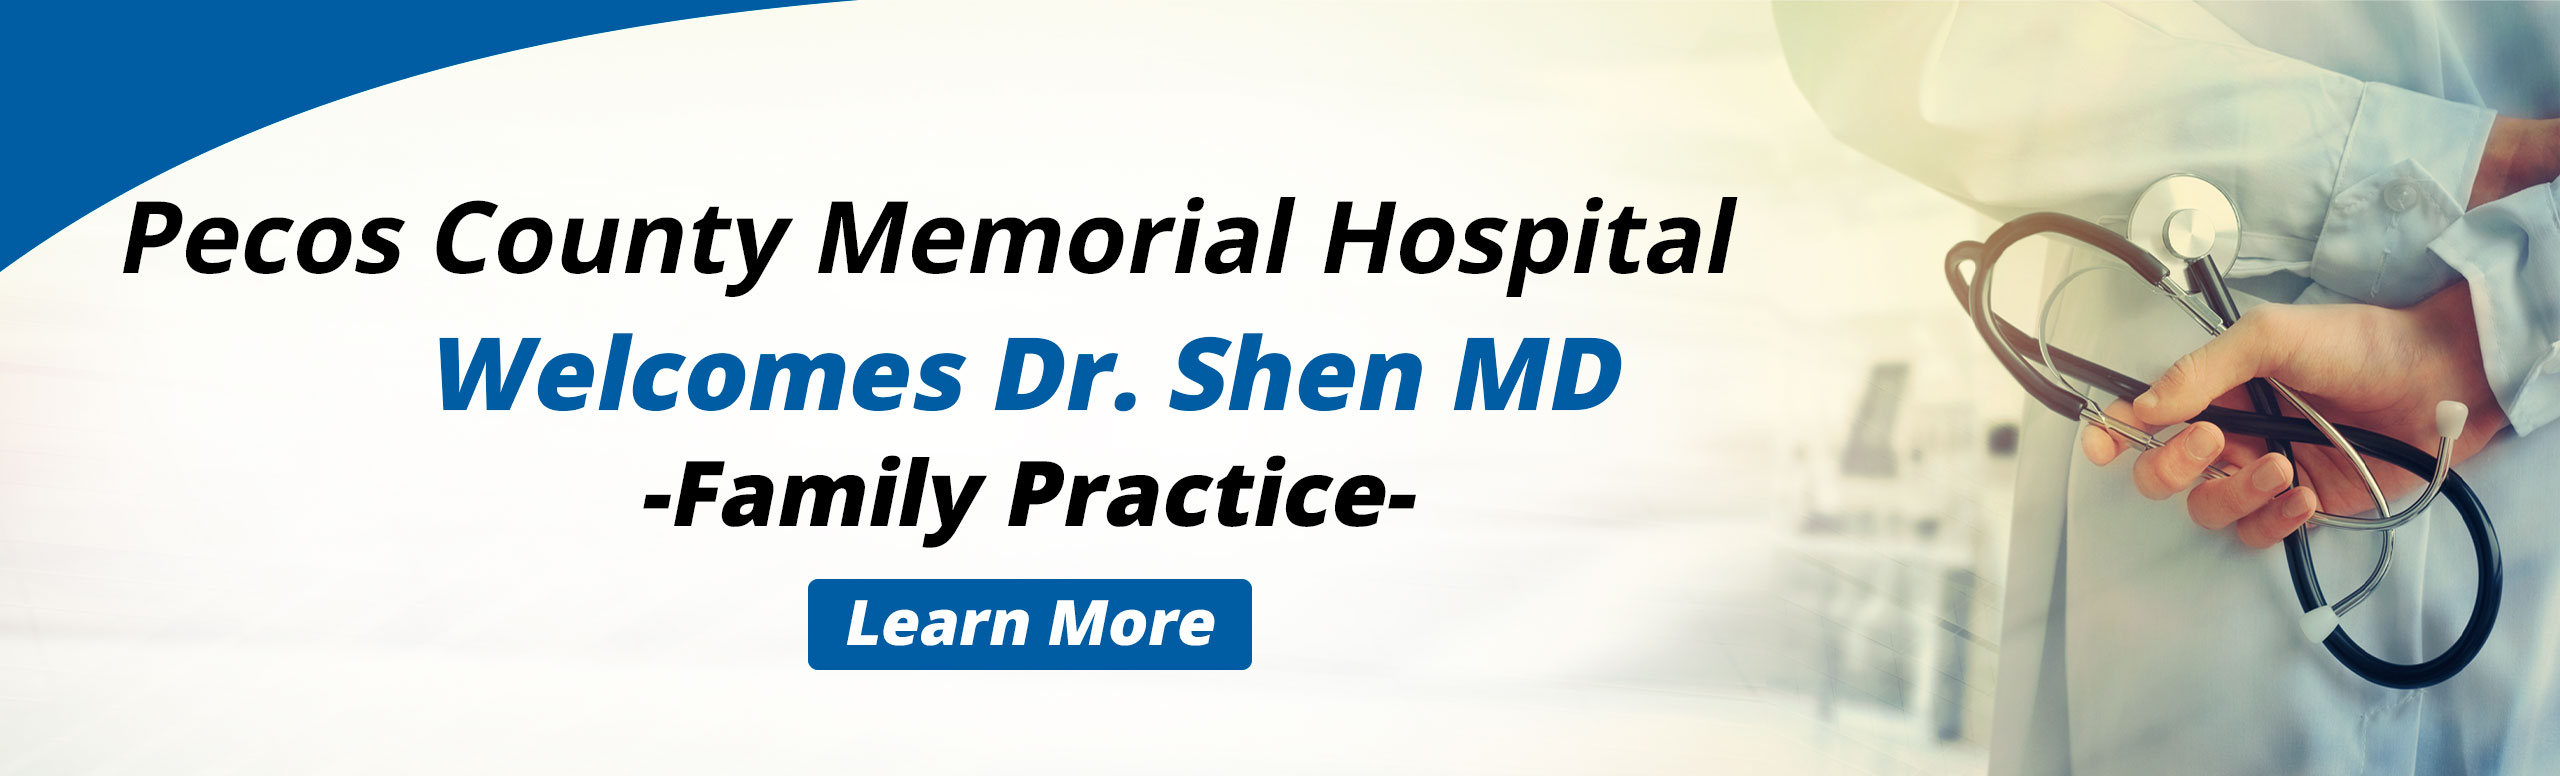 Pecos County Memorial Hospital Welcome Dr. Shen MD -Family Practice-  Click here to learn more